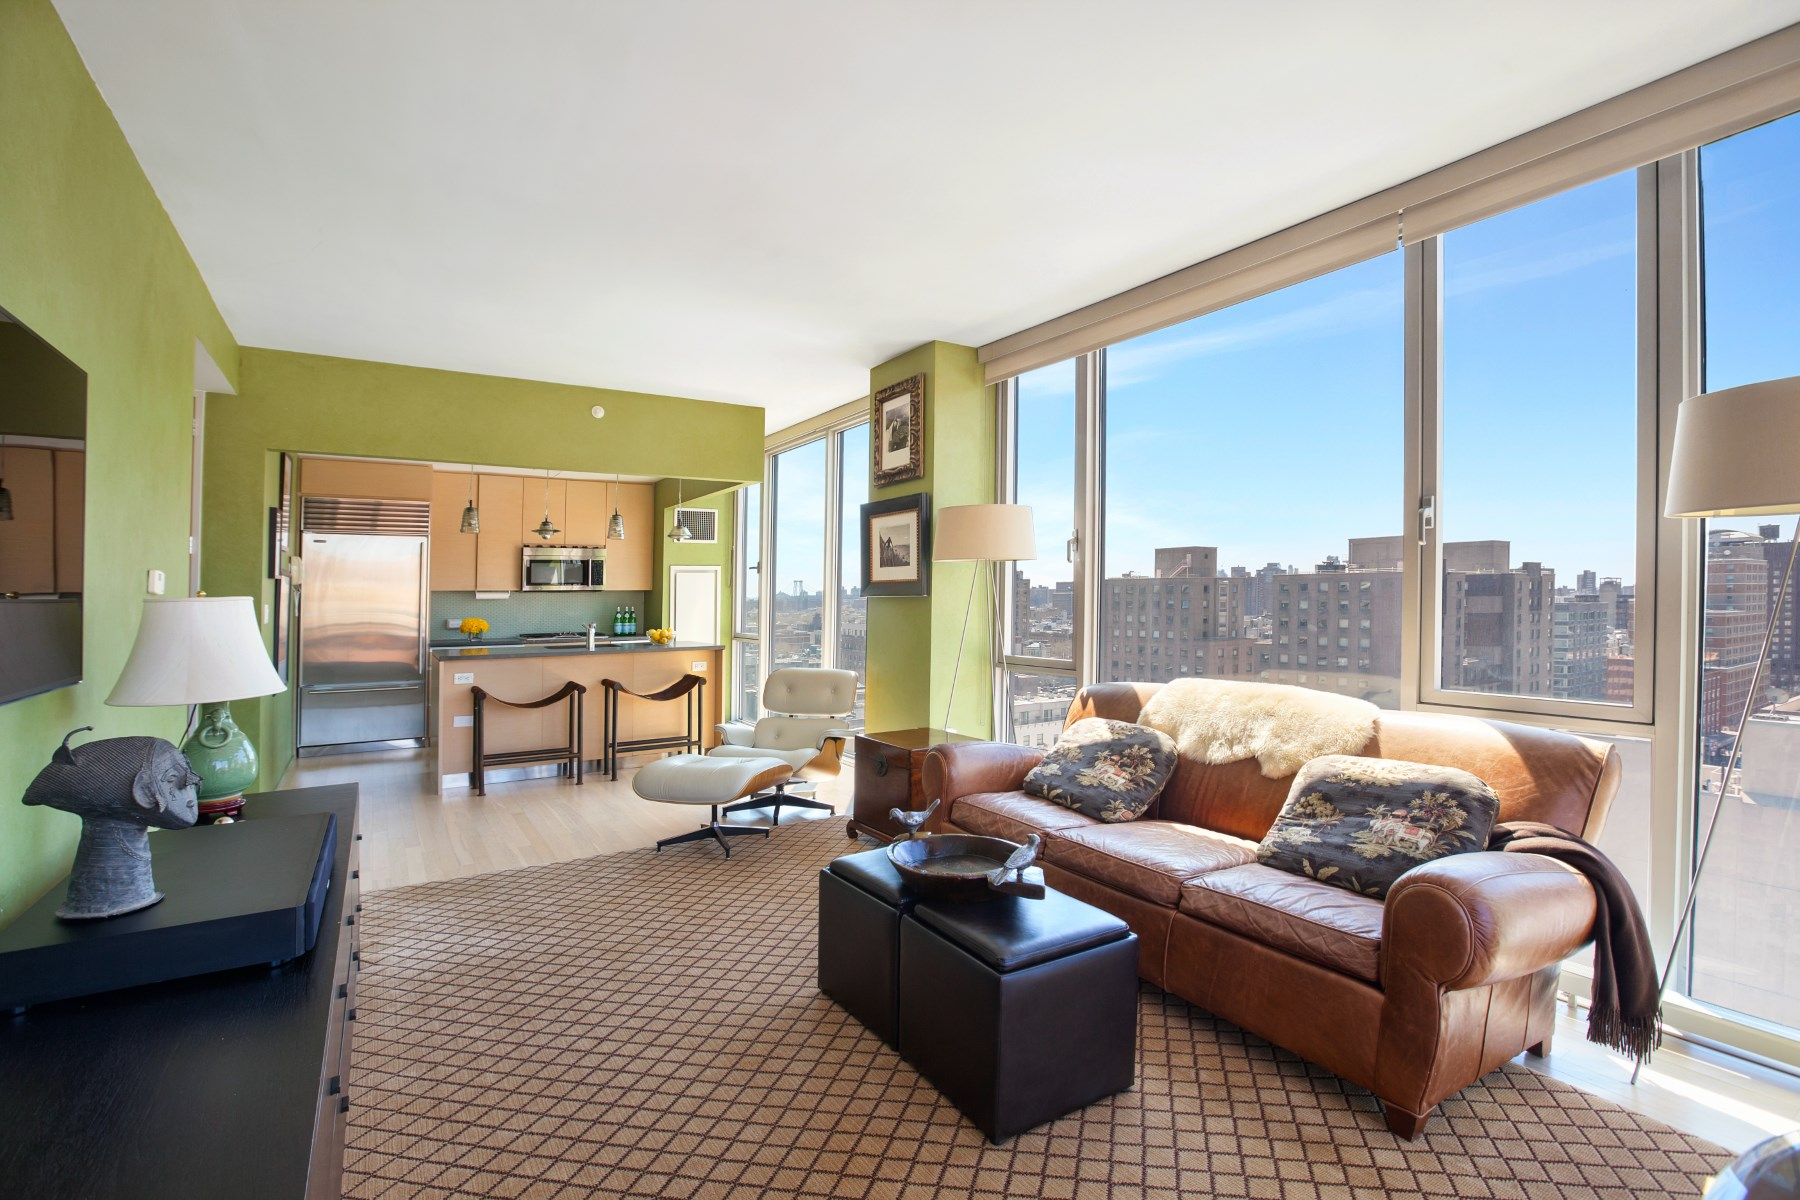 Condominium for Sale at 110 Third Avenue 13A 110 Third Avenue Apt 13A New York, New York, 10003 United States